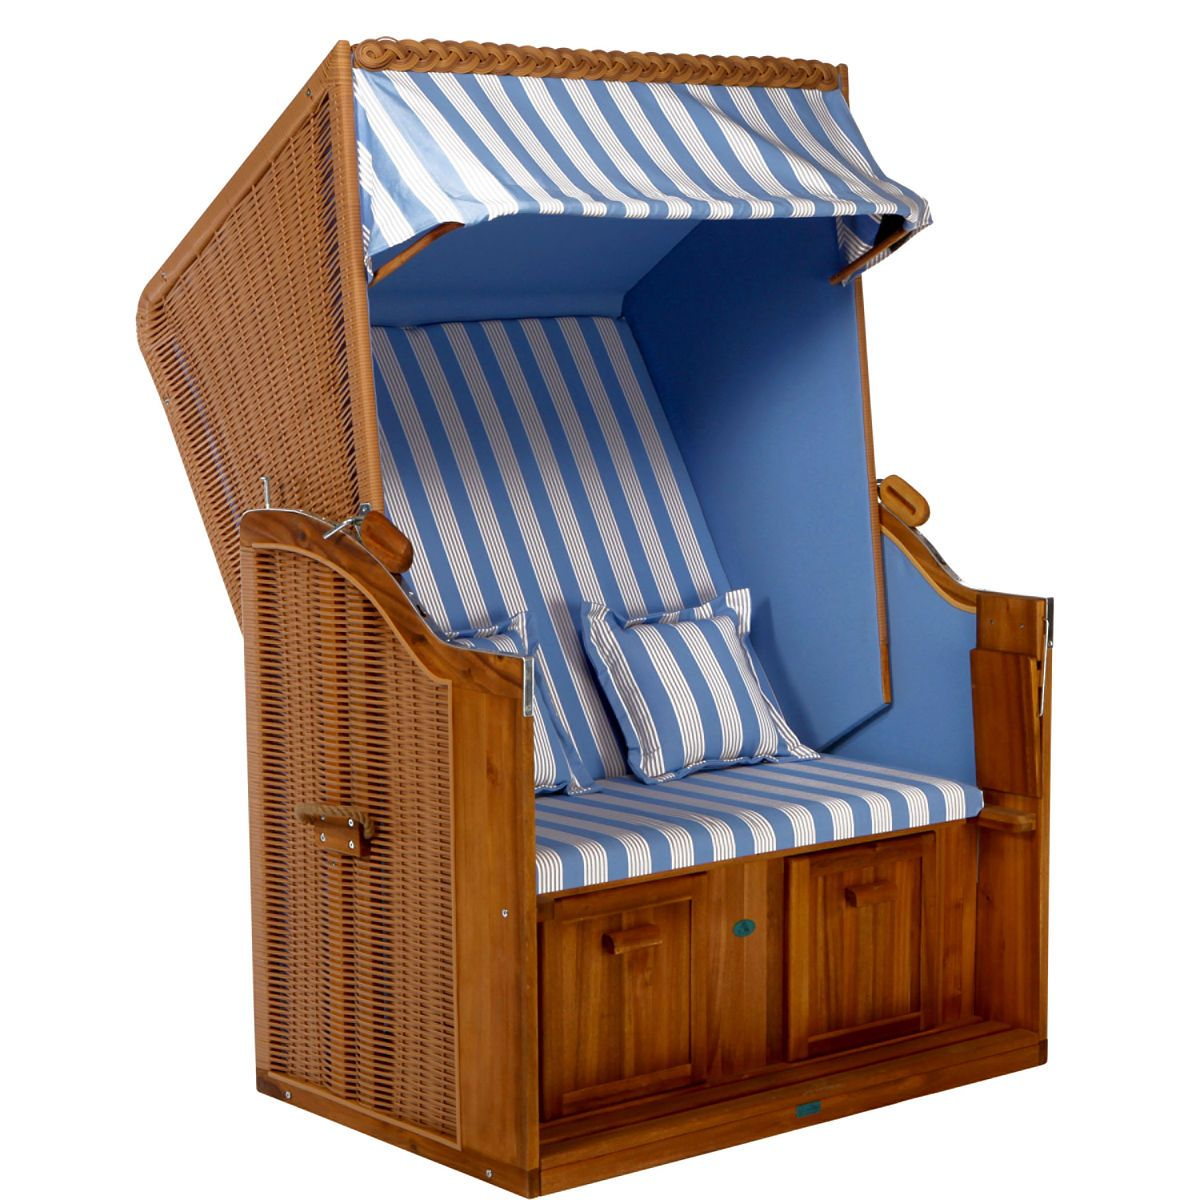 Sylt Flat Packed Roofed Wicker Beach Seat Butlers England